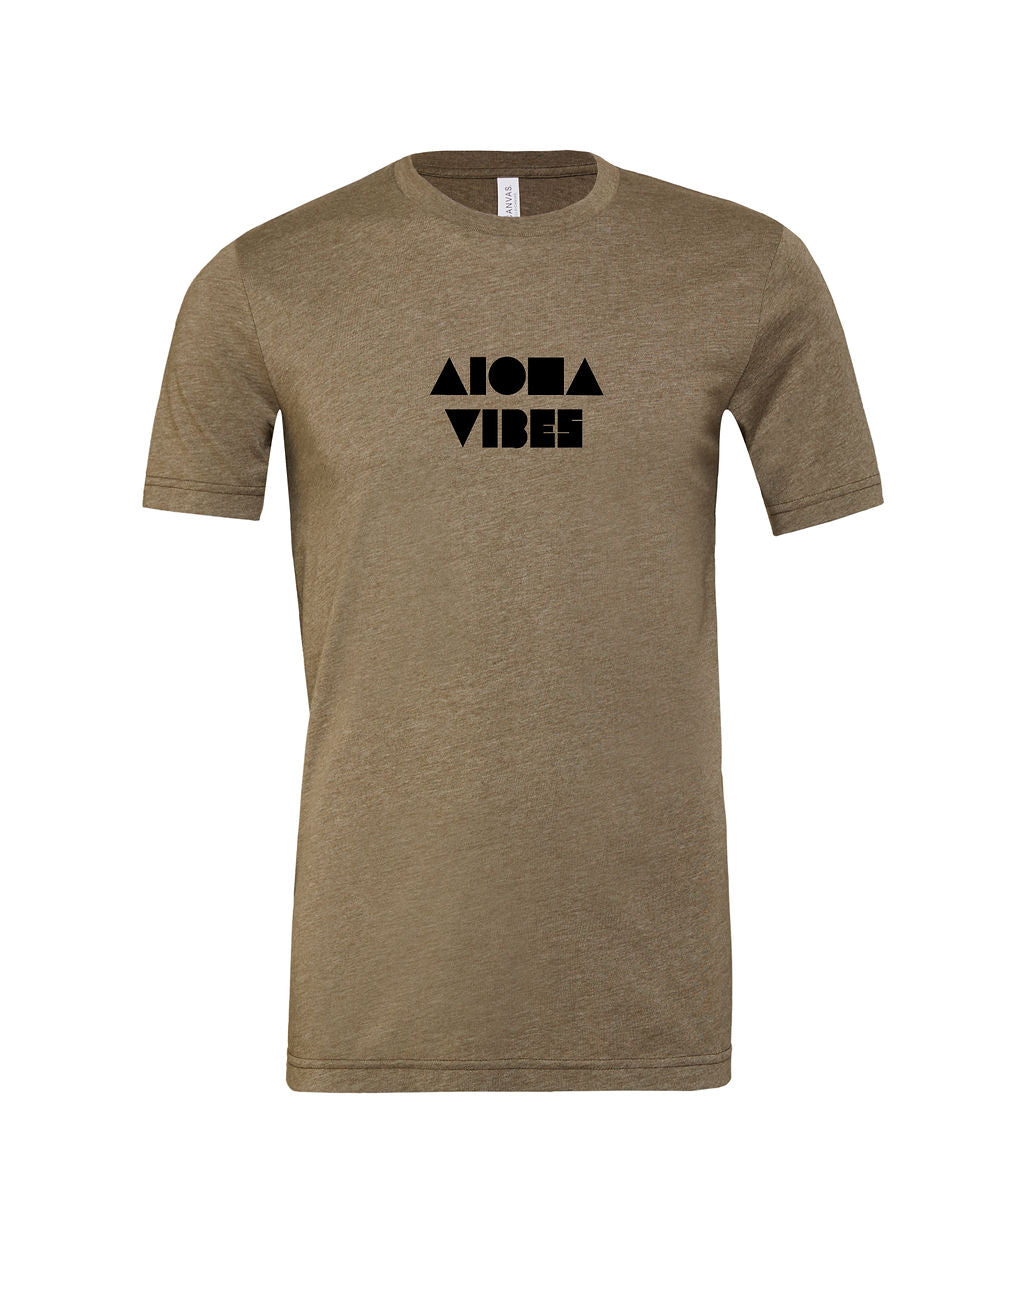 Aloha Vibes Youth T-shirt